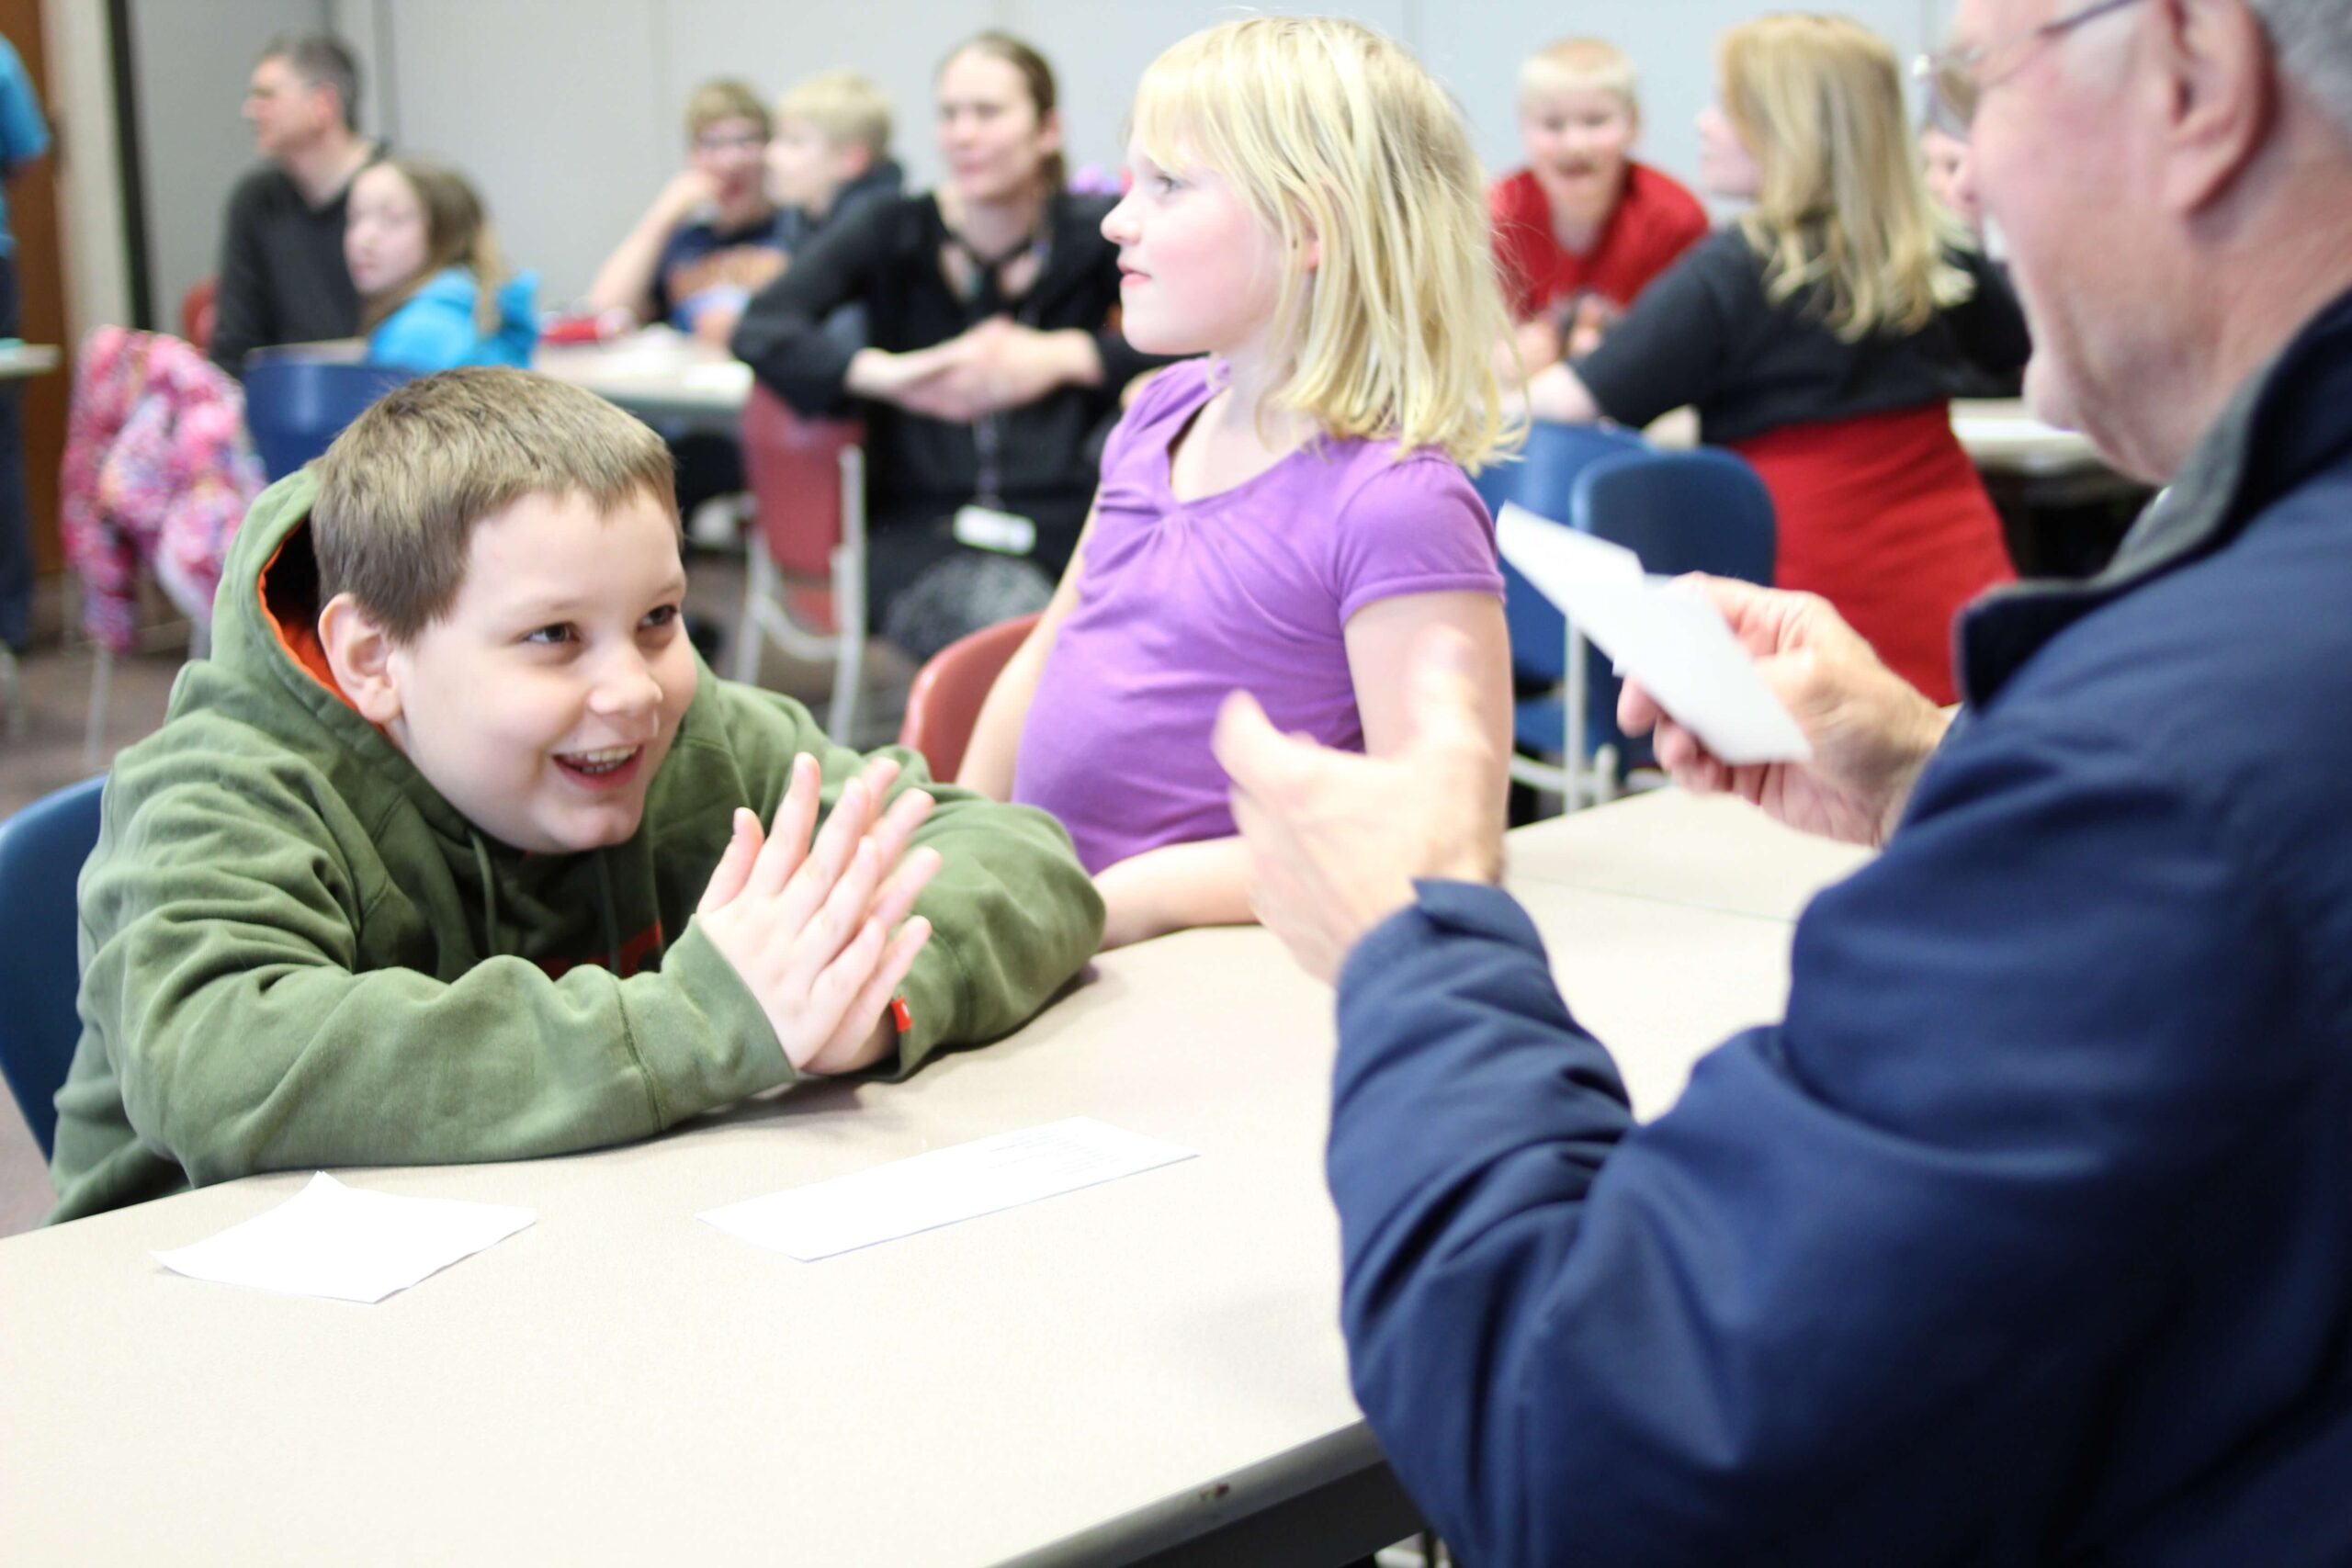 Marion Cares offers Family Programming